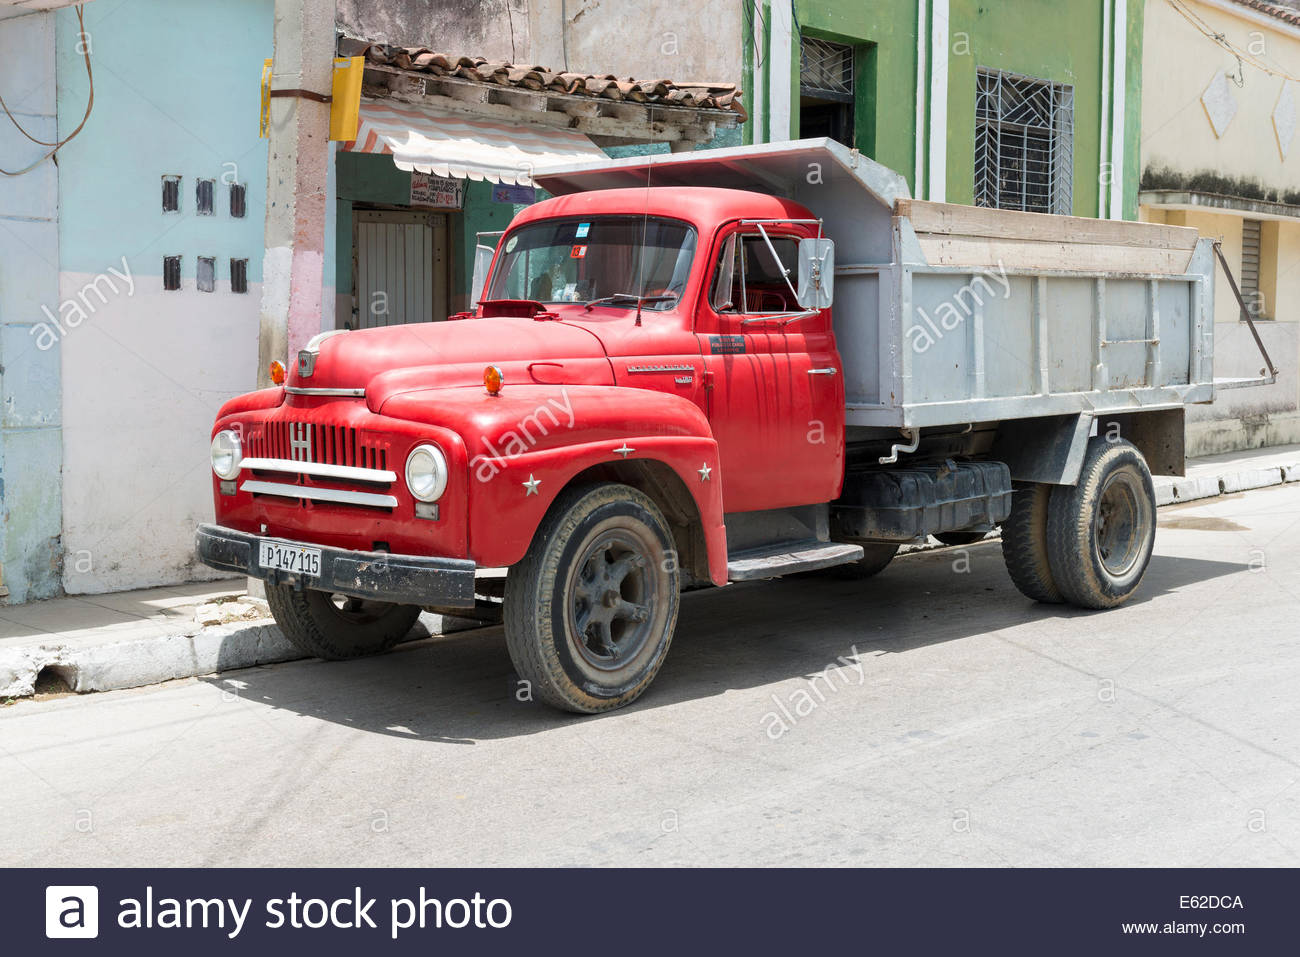 Old truck used for construction work. After the government ...